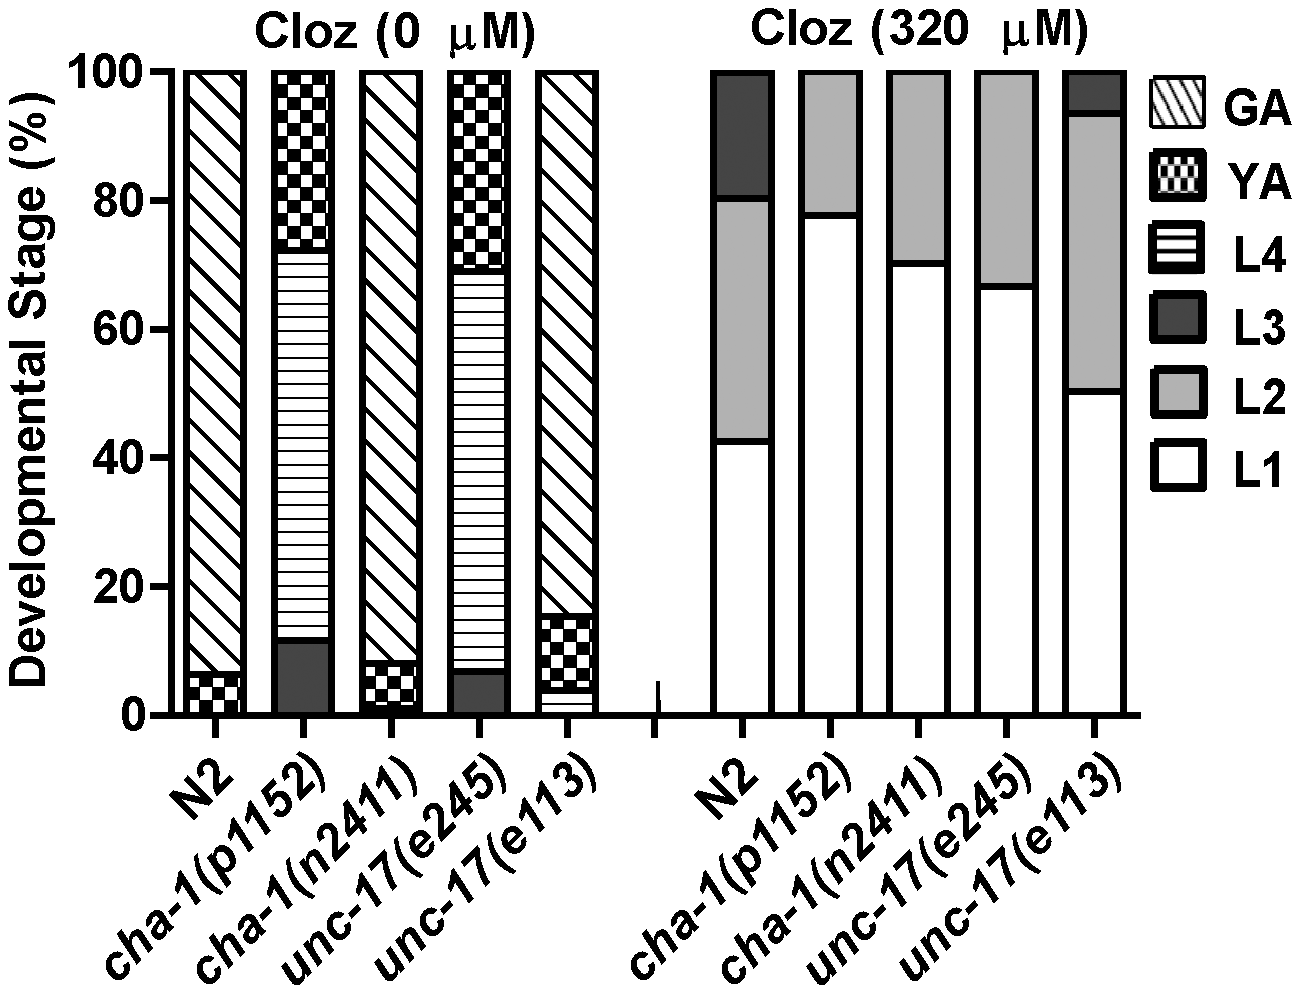 Ach release was not the mechanism of clozapine-induced larval arrest.